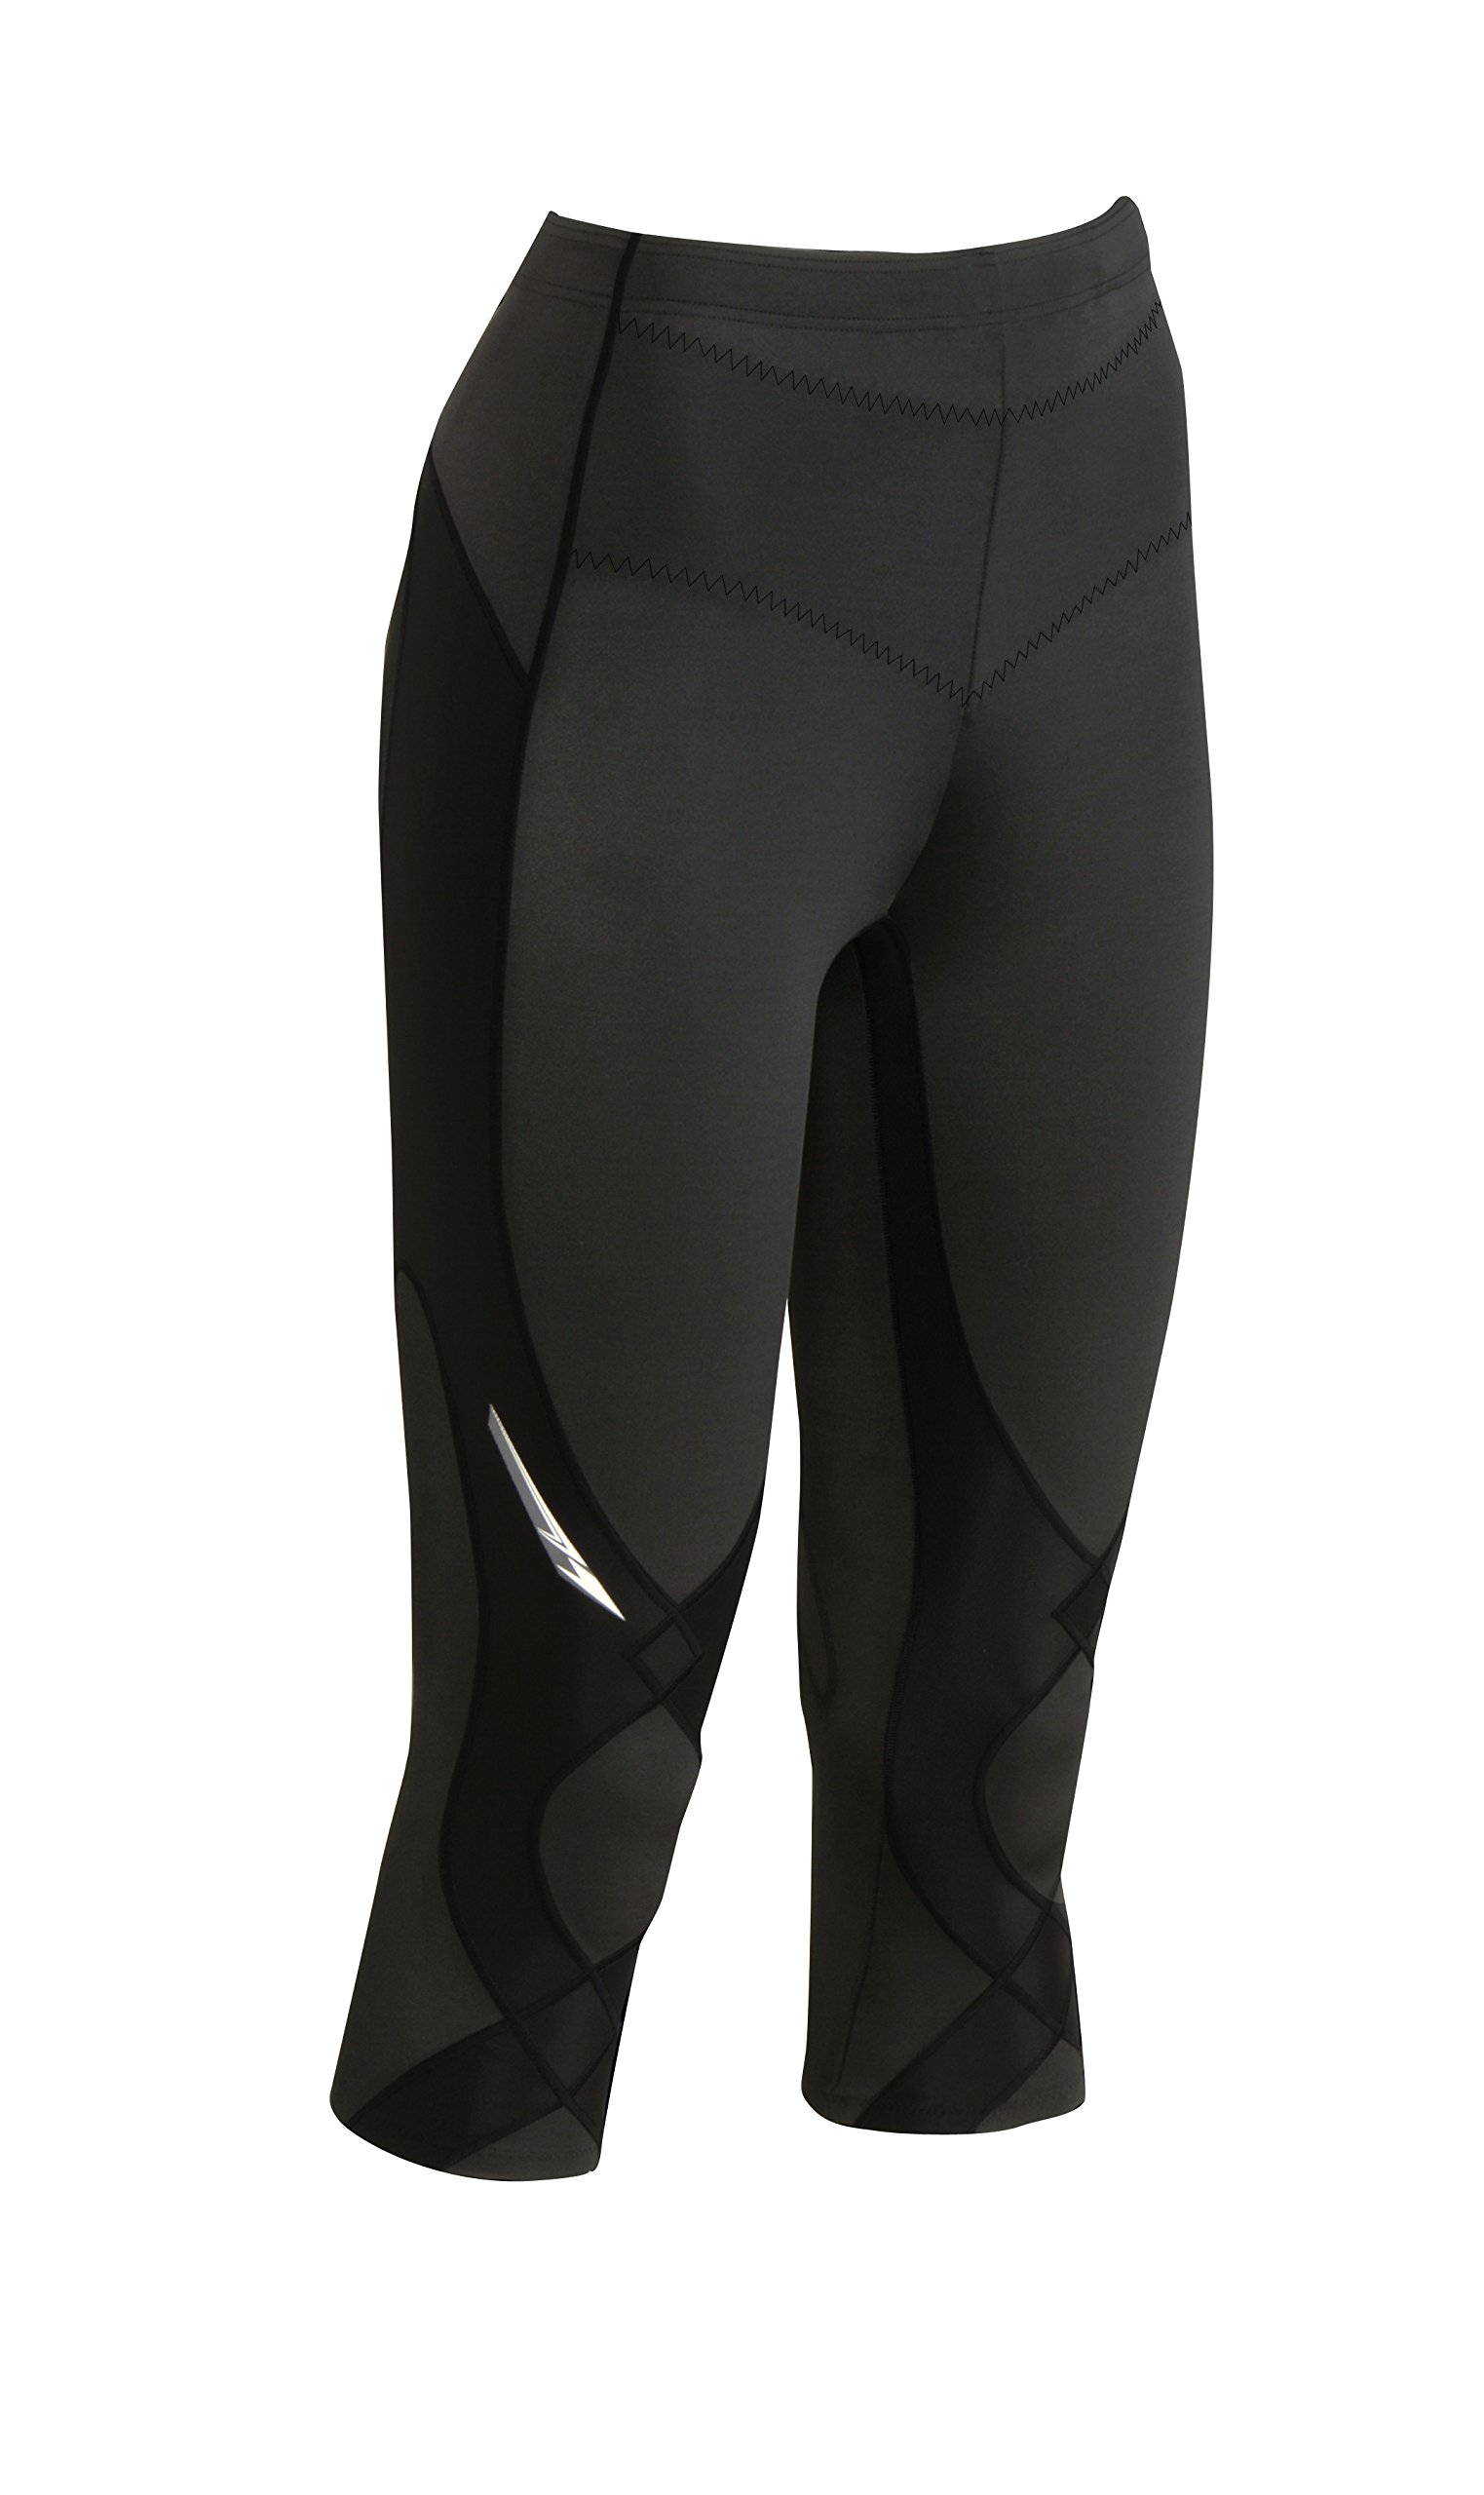 64341238bdc3 CW-X Women s Stabilyx Joint Support 3 4 Capri Compression Tight product  image